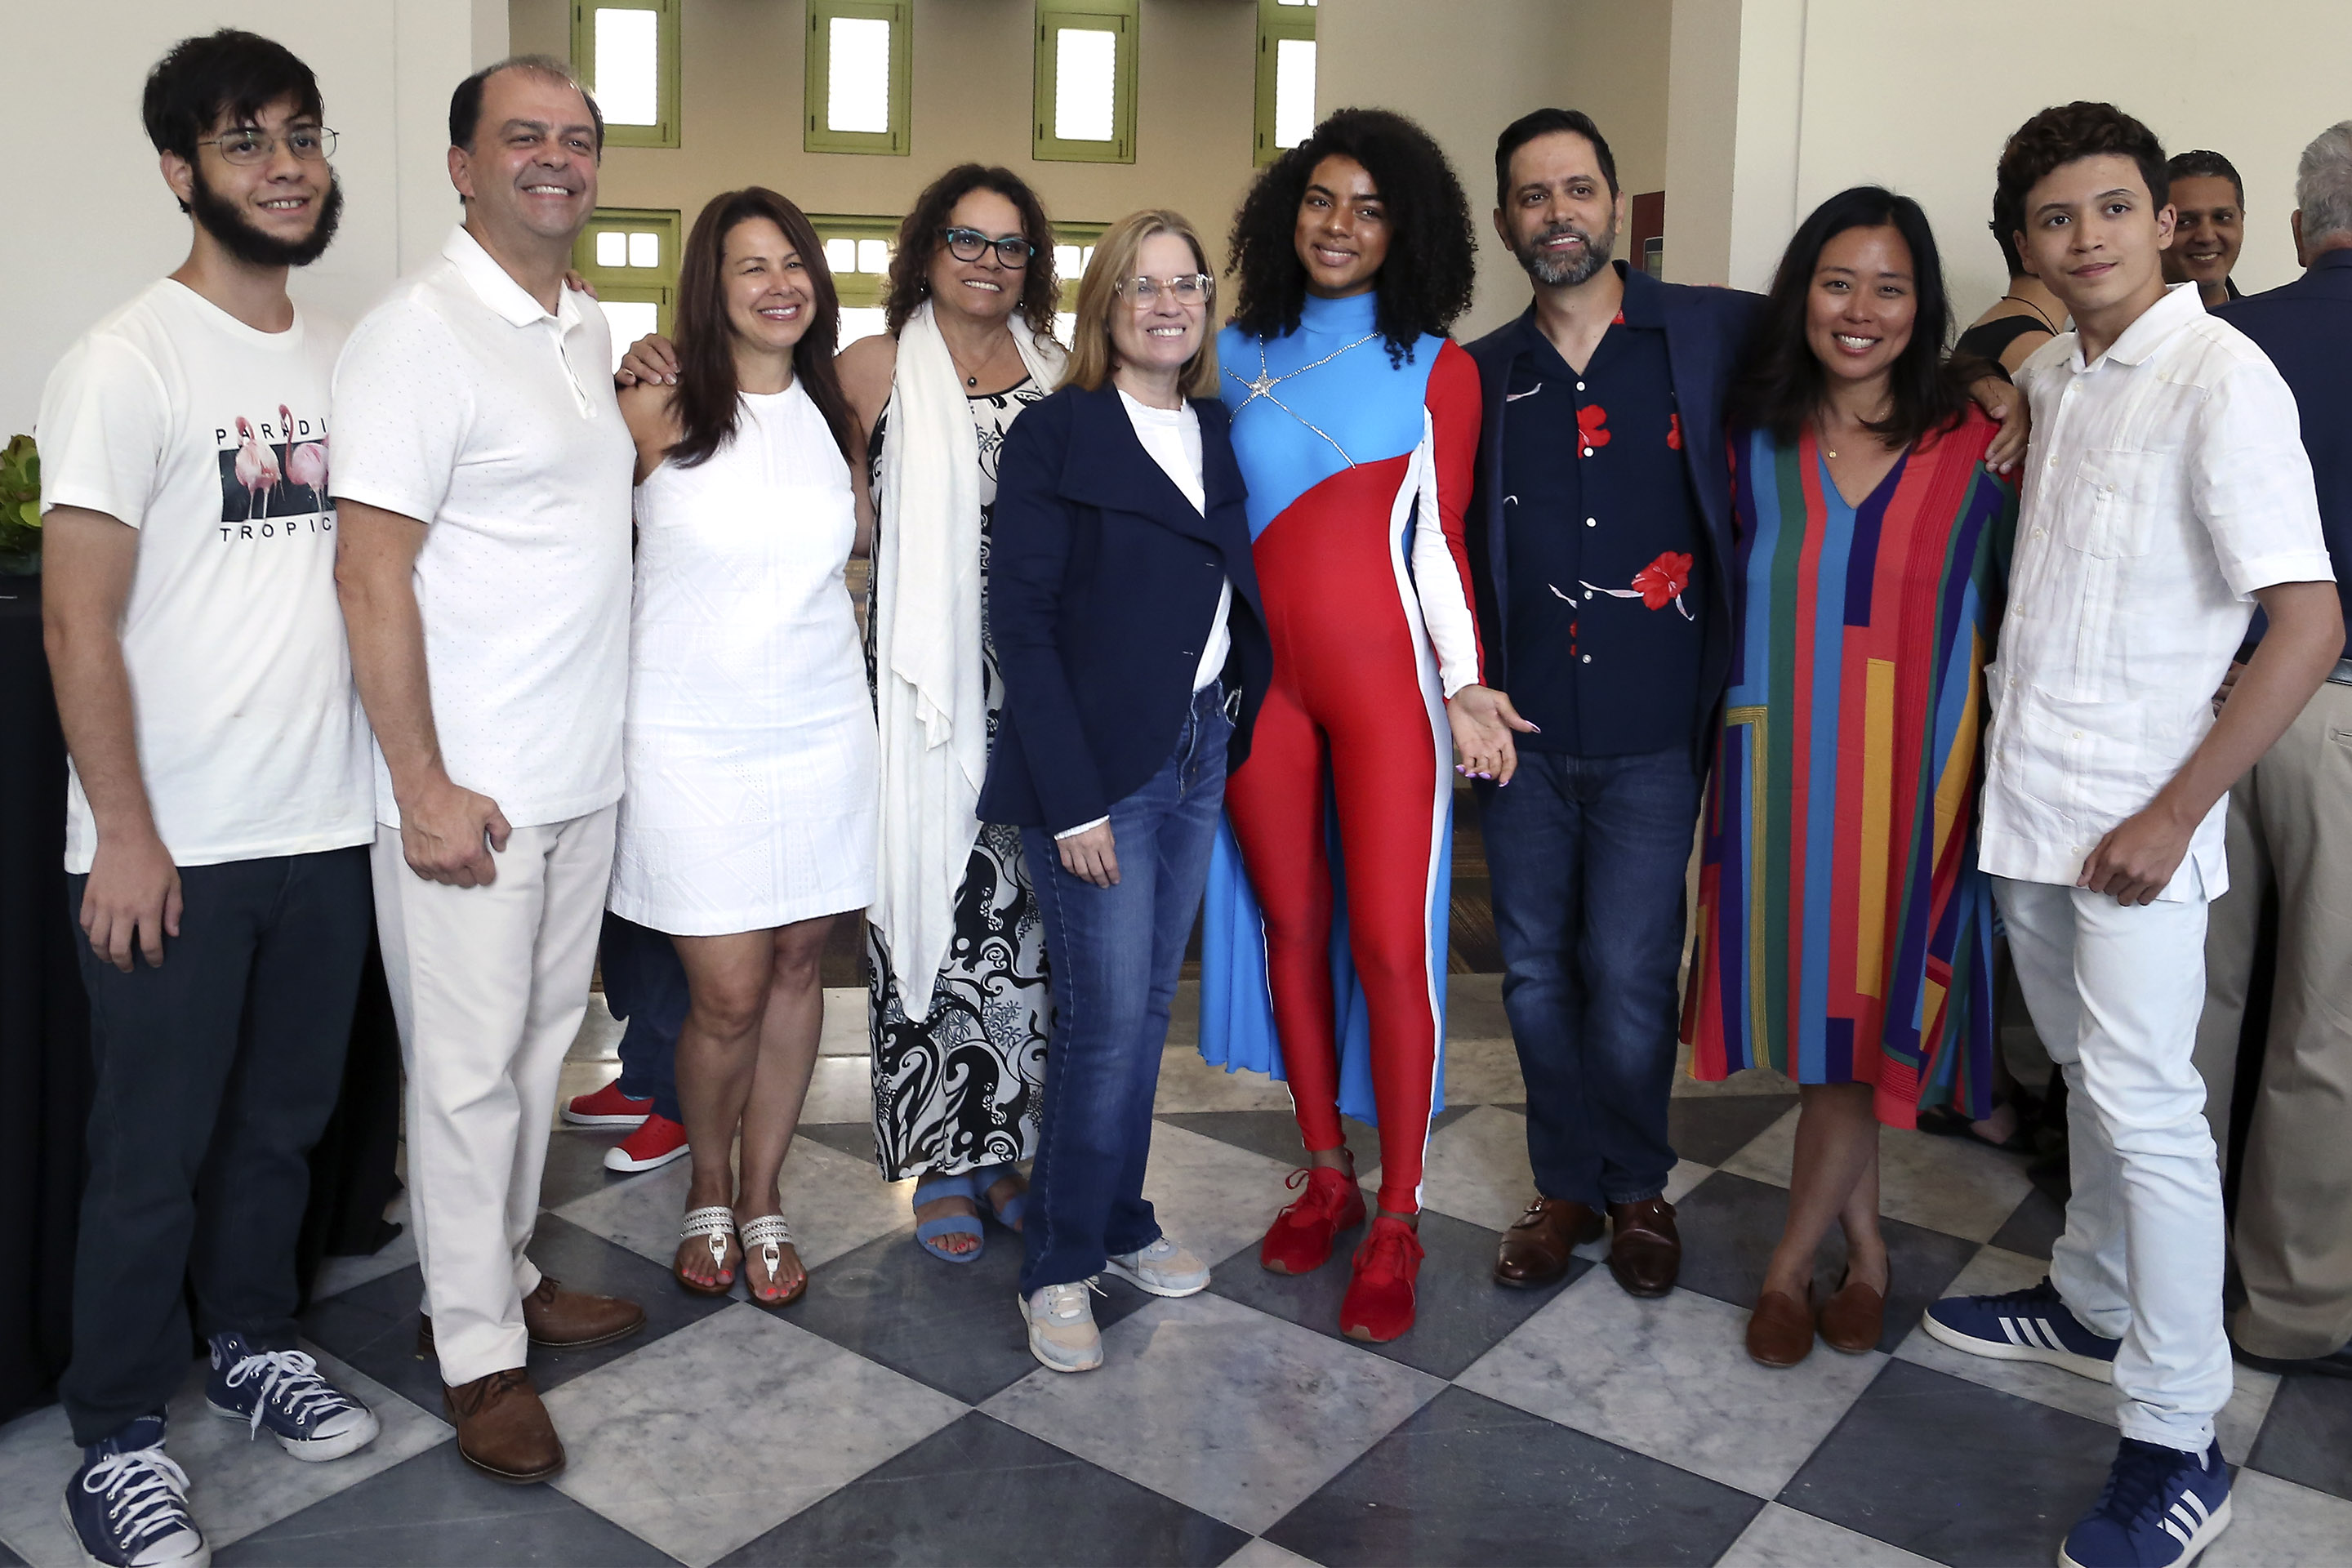 Mayor Carmen Yulín Cruz, La Borinqueña, Grants Committee and family